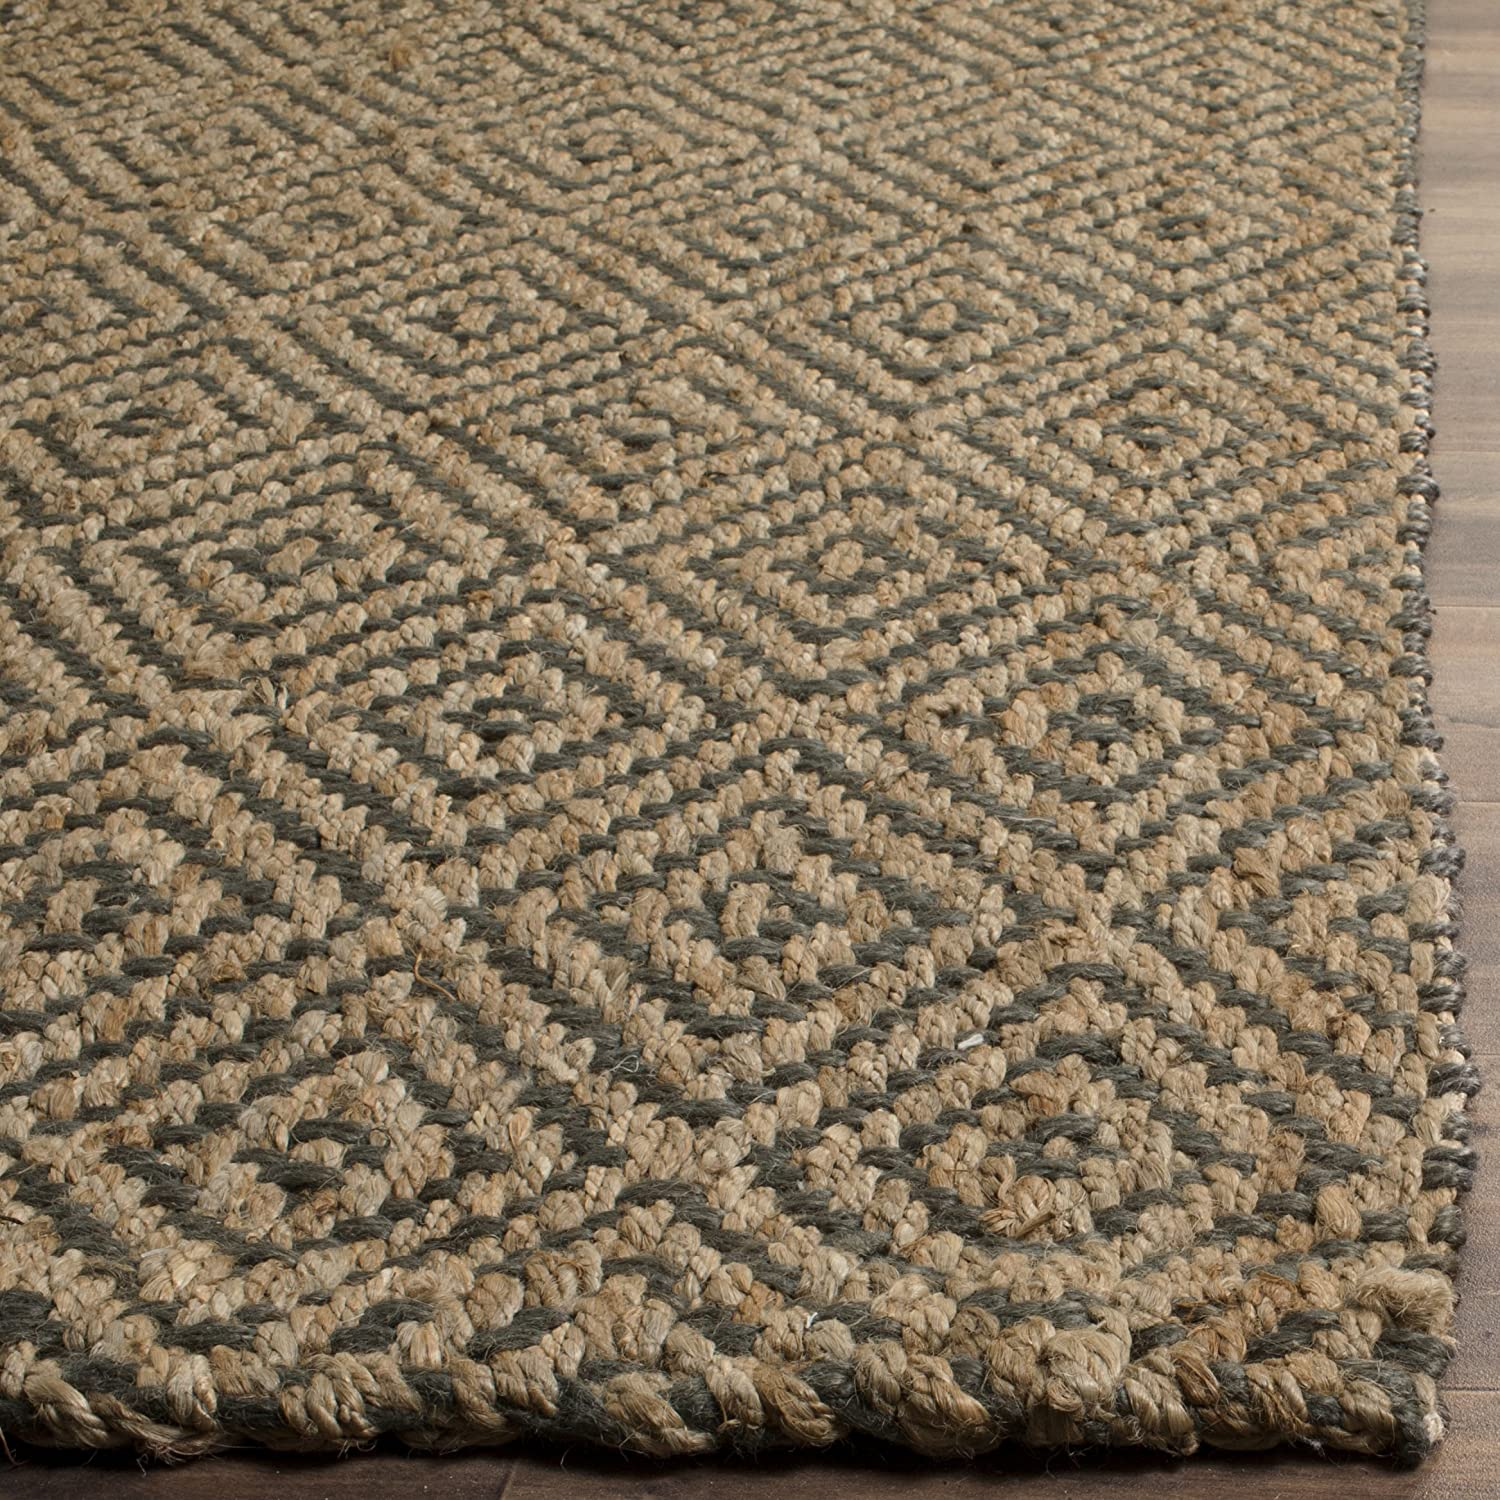 23 x 22 NF181C-222 Safavieh Natural Fiber Collection NF181C Hand-Woven Natural and Black Jute Runner